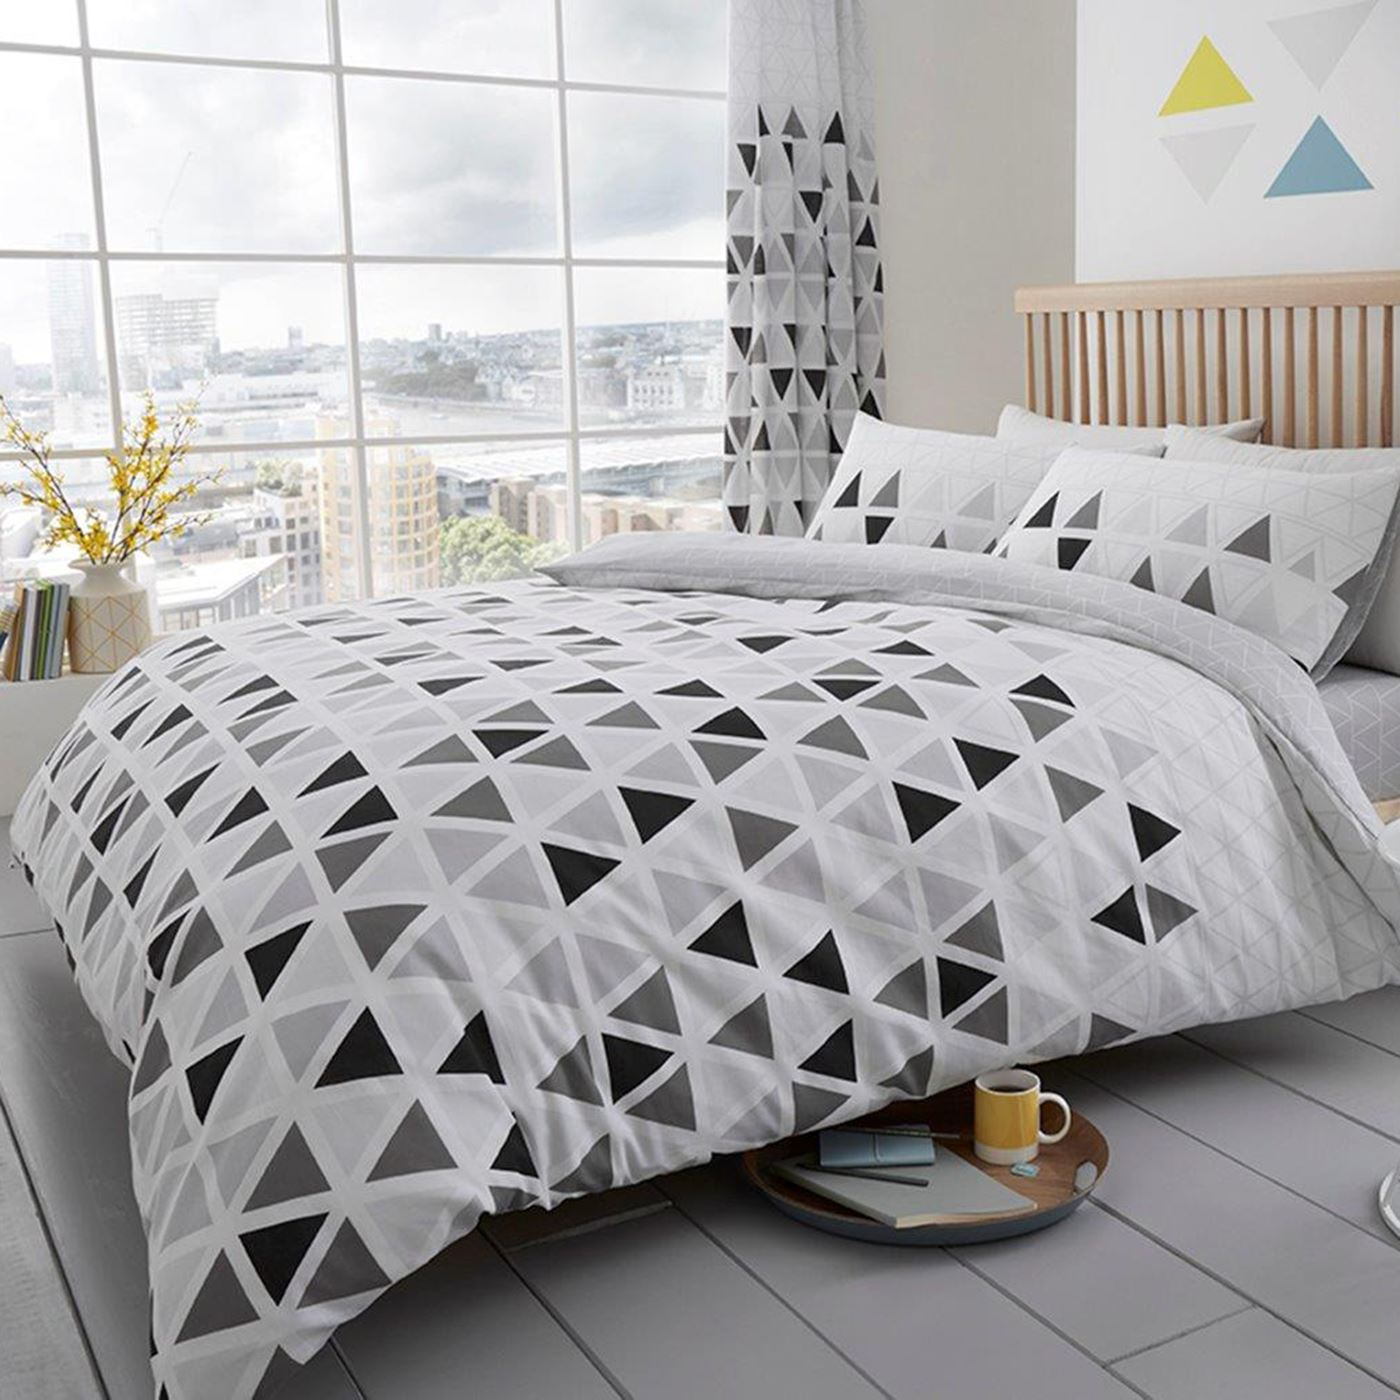 erwachsene bettbezug sets einzeln doppel king galaxy geometrisch ebay. Black Bedroom Furniture Sets. Home Design Ideas